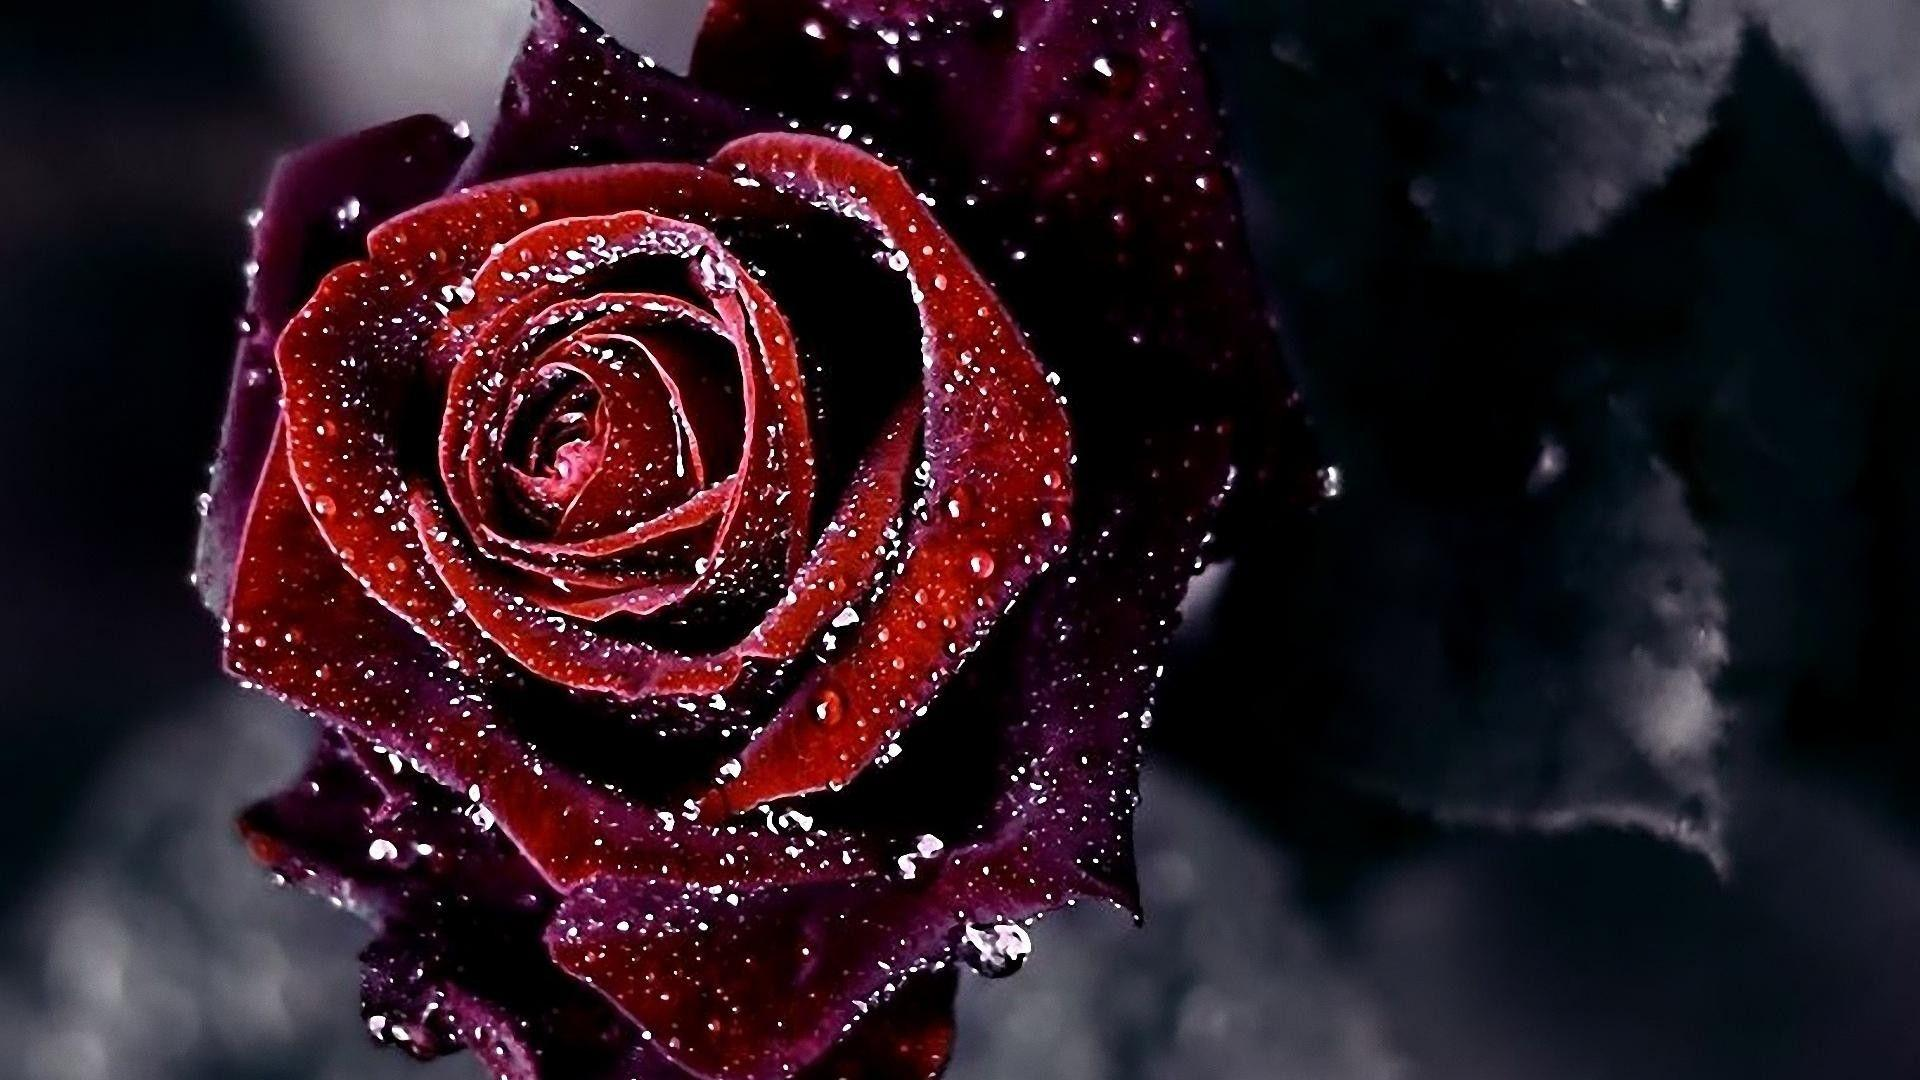 Black And Red Rose Wallpapers Wallpaper Cave